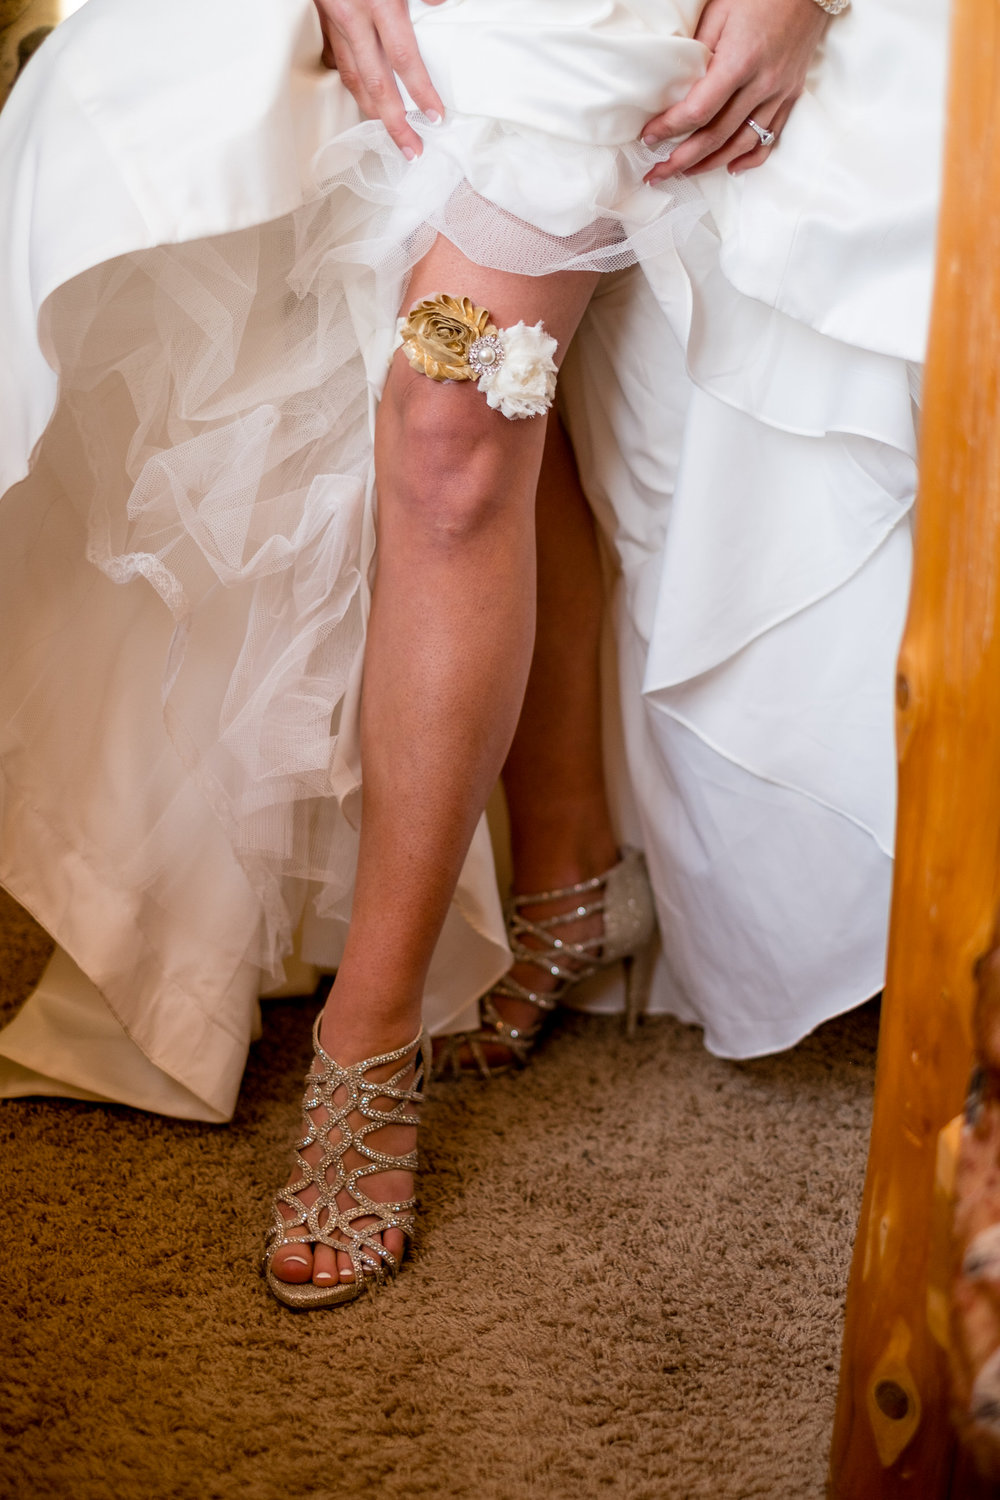 garter belt wedding photographer brainerd, mn